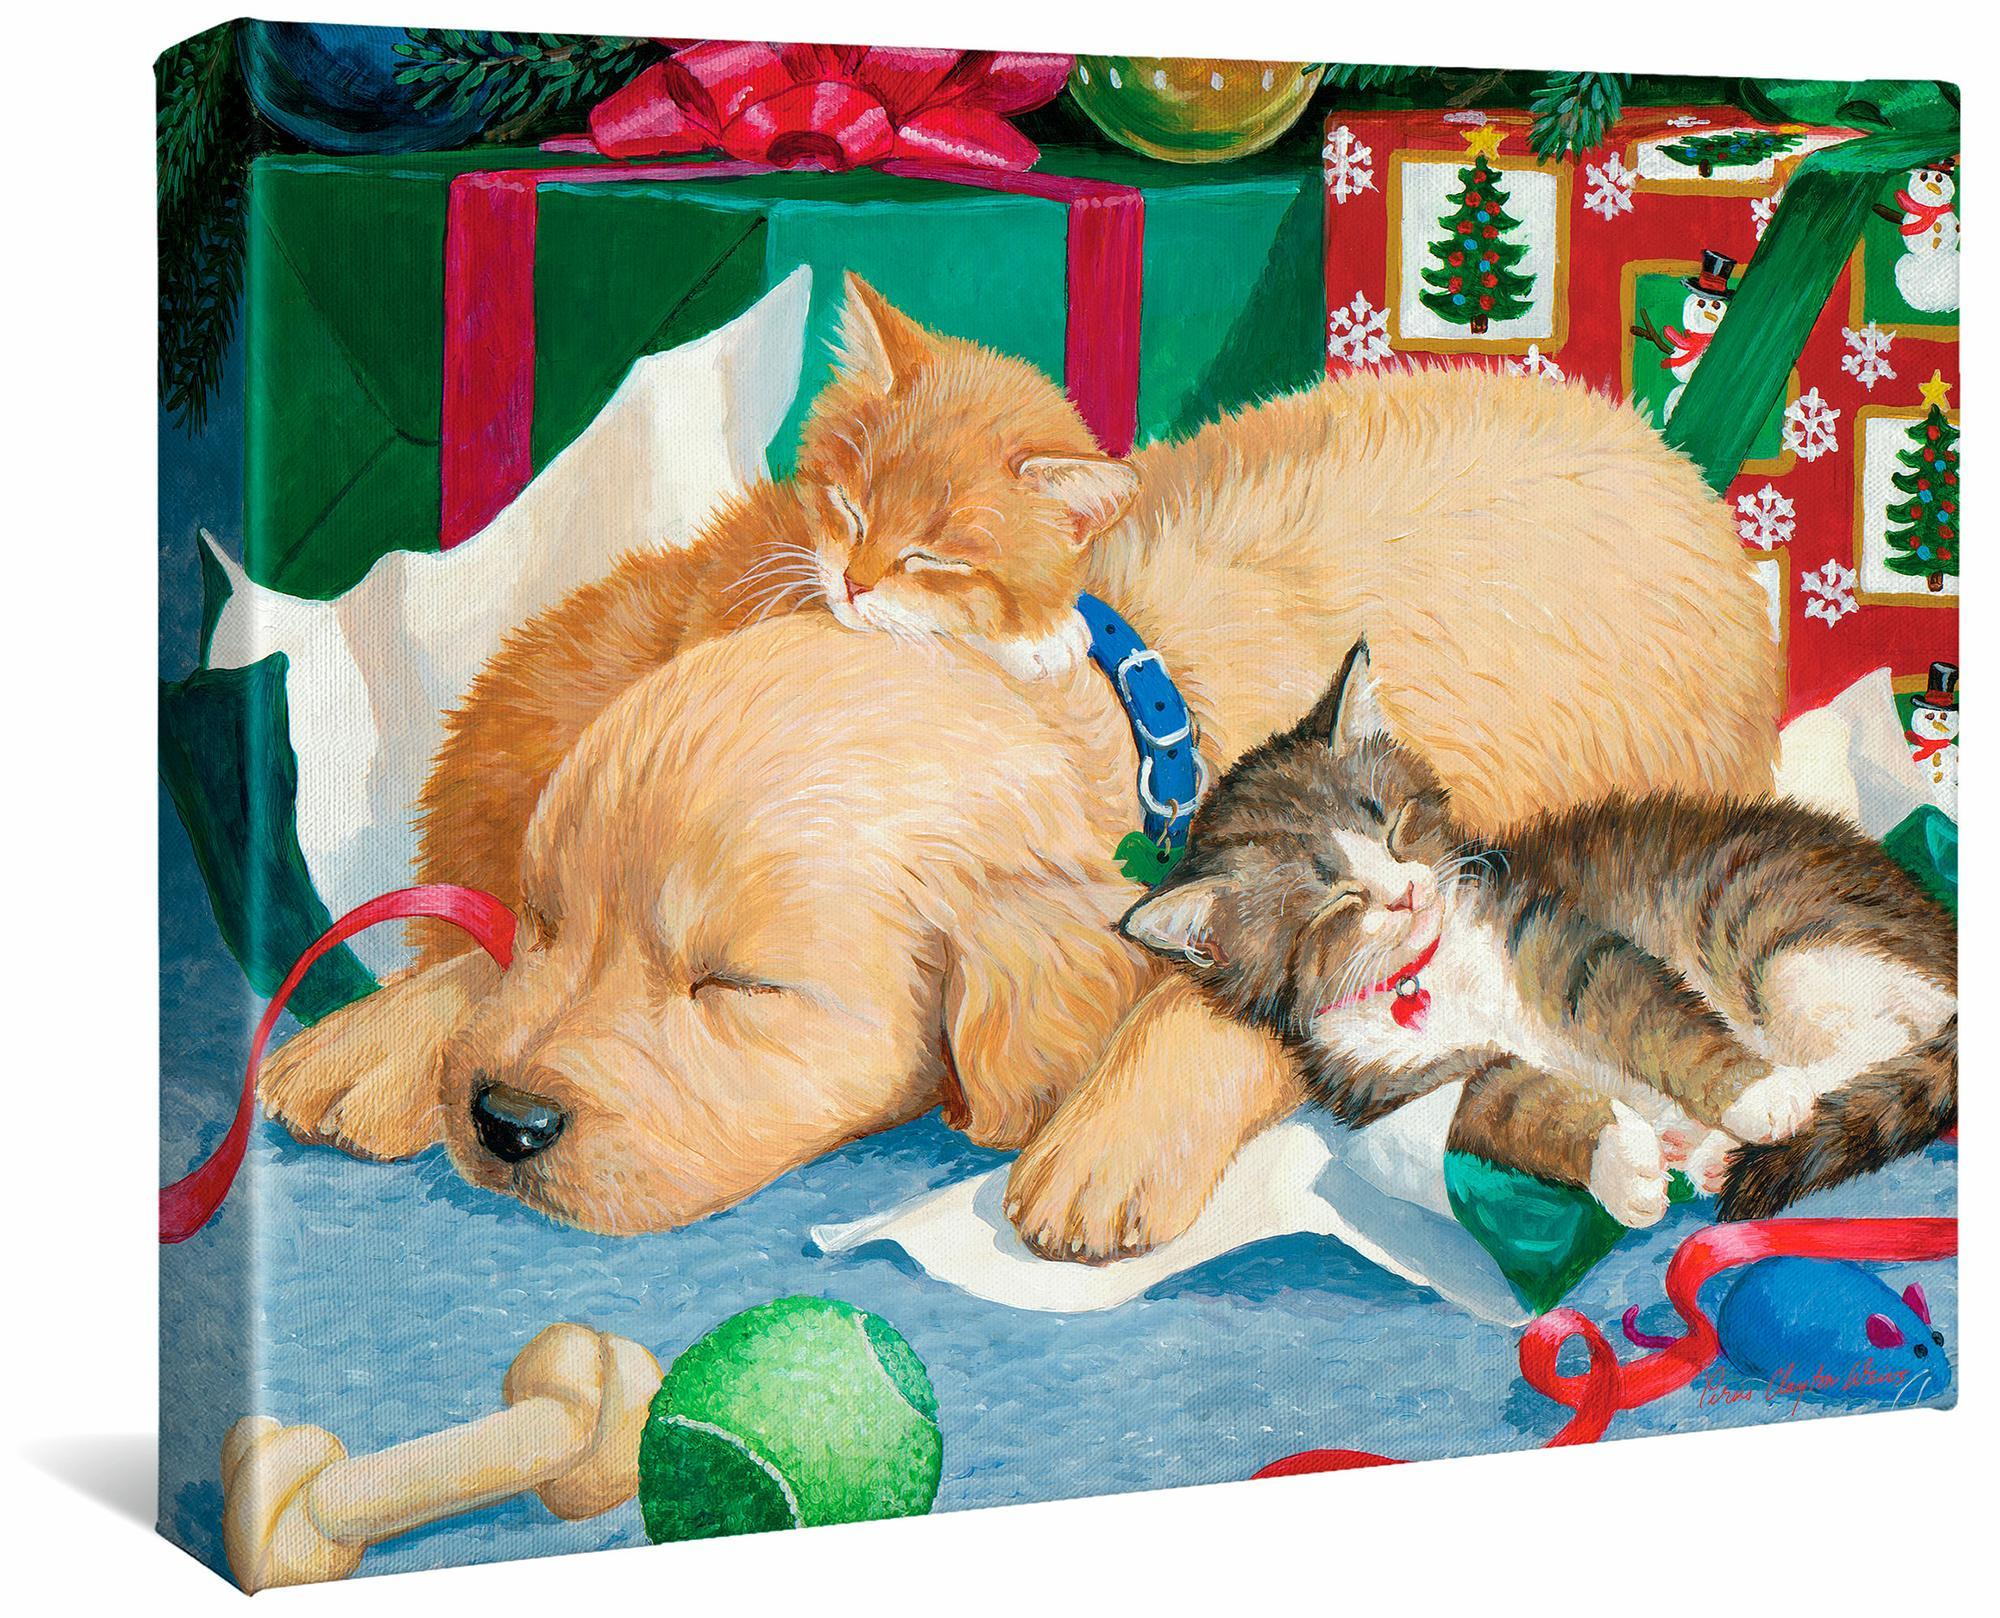 Too Much Fun—Puppy & Kittens.